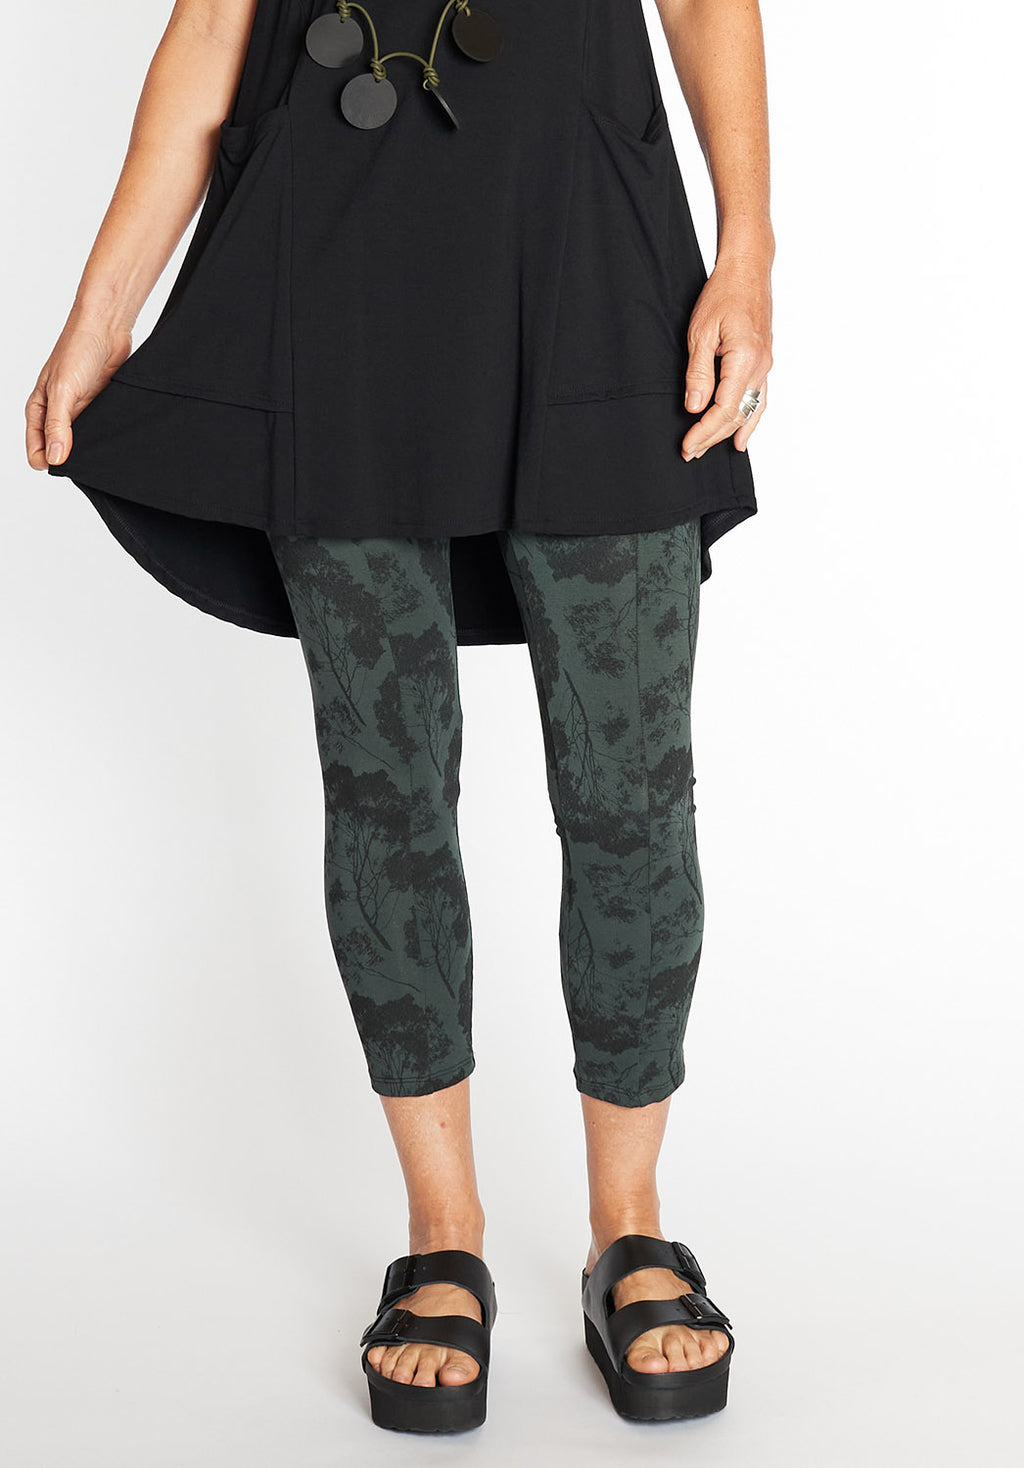 bamboo fashion online, australian fashion designer, designer fashion online, australian womens fashion, printed bamboo leggings online, bamboo boutique leggings, australian boutique fashion